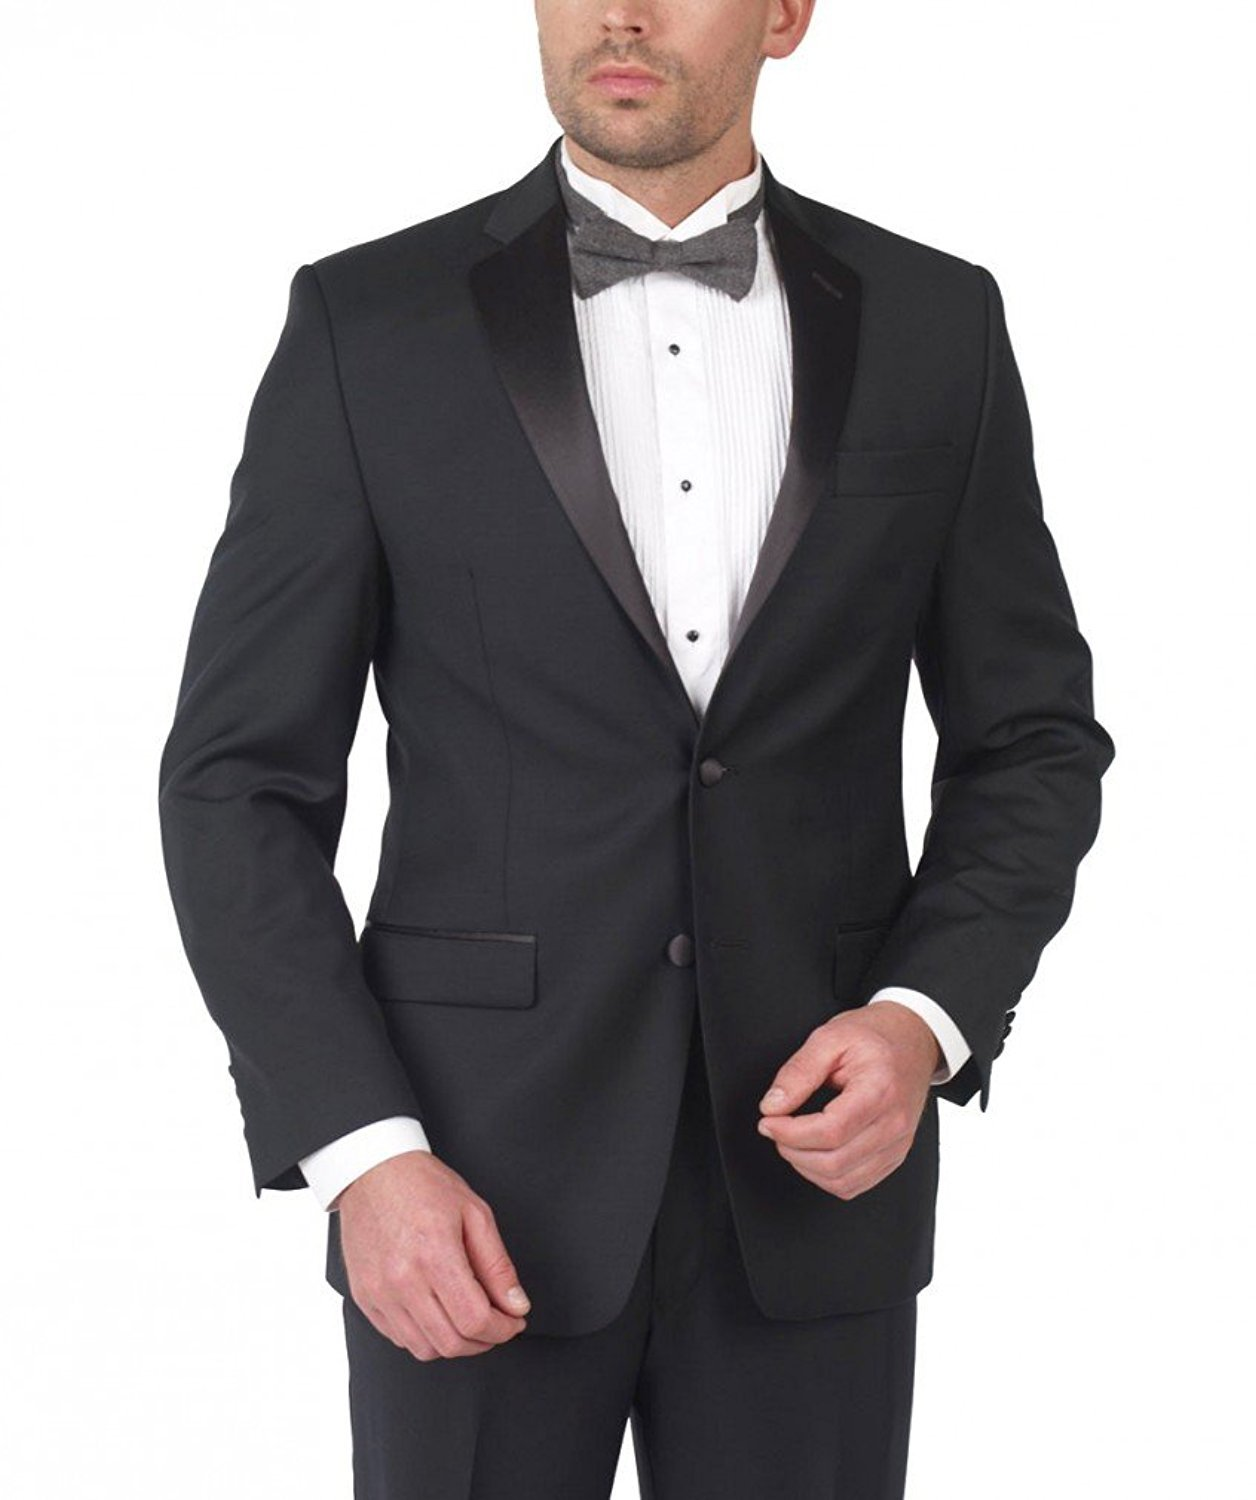 Ralph Lauren Super 130's Wool Tuxedo - 40 Long